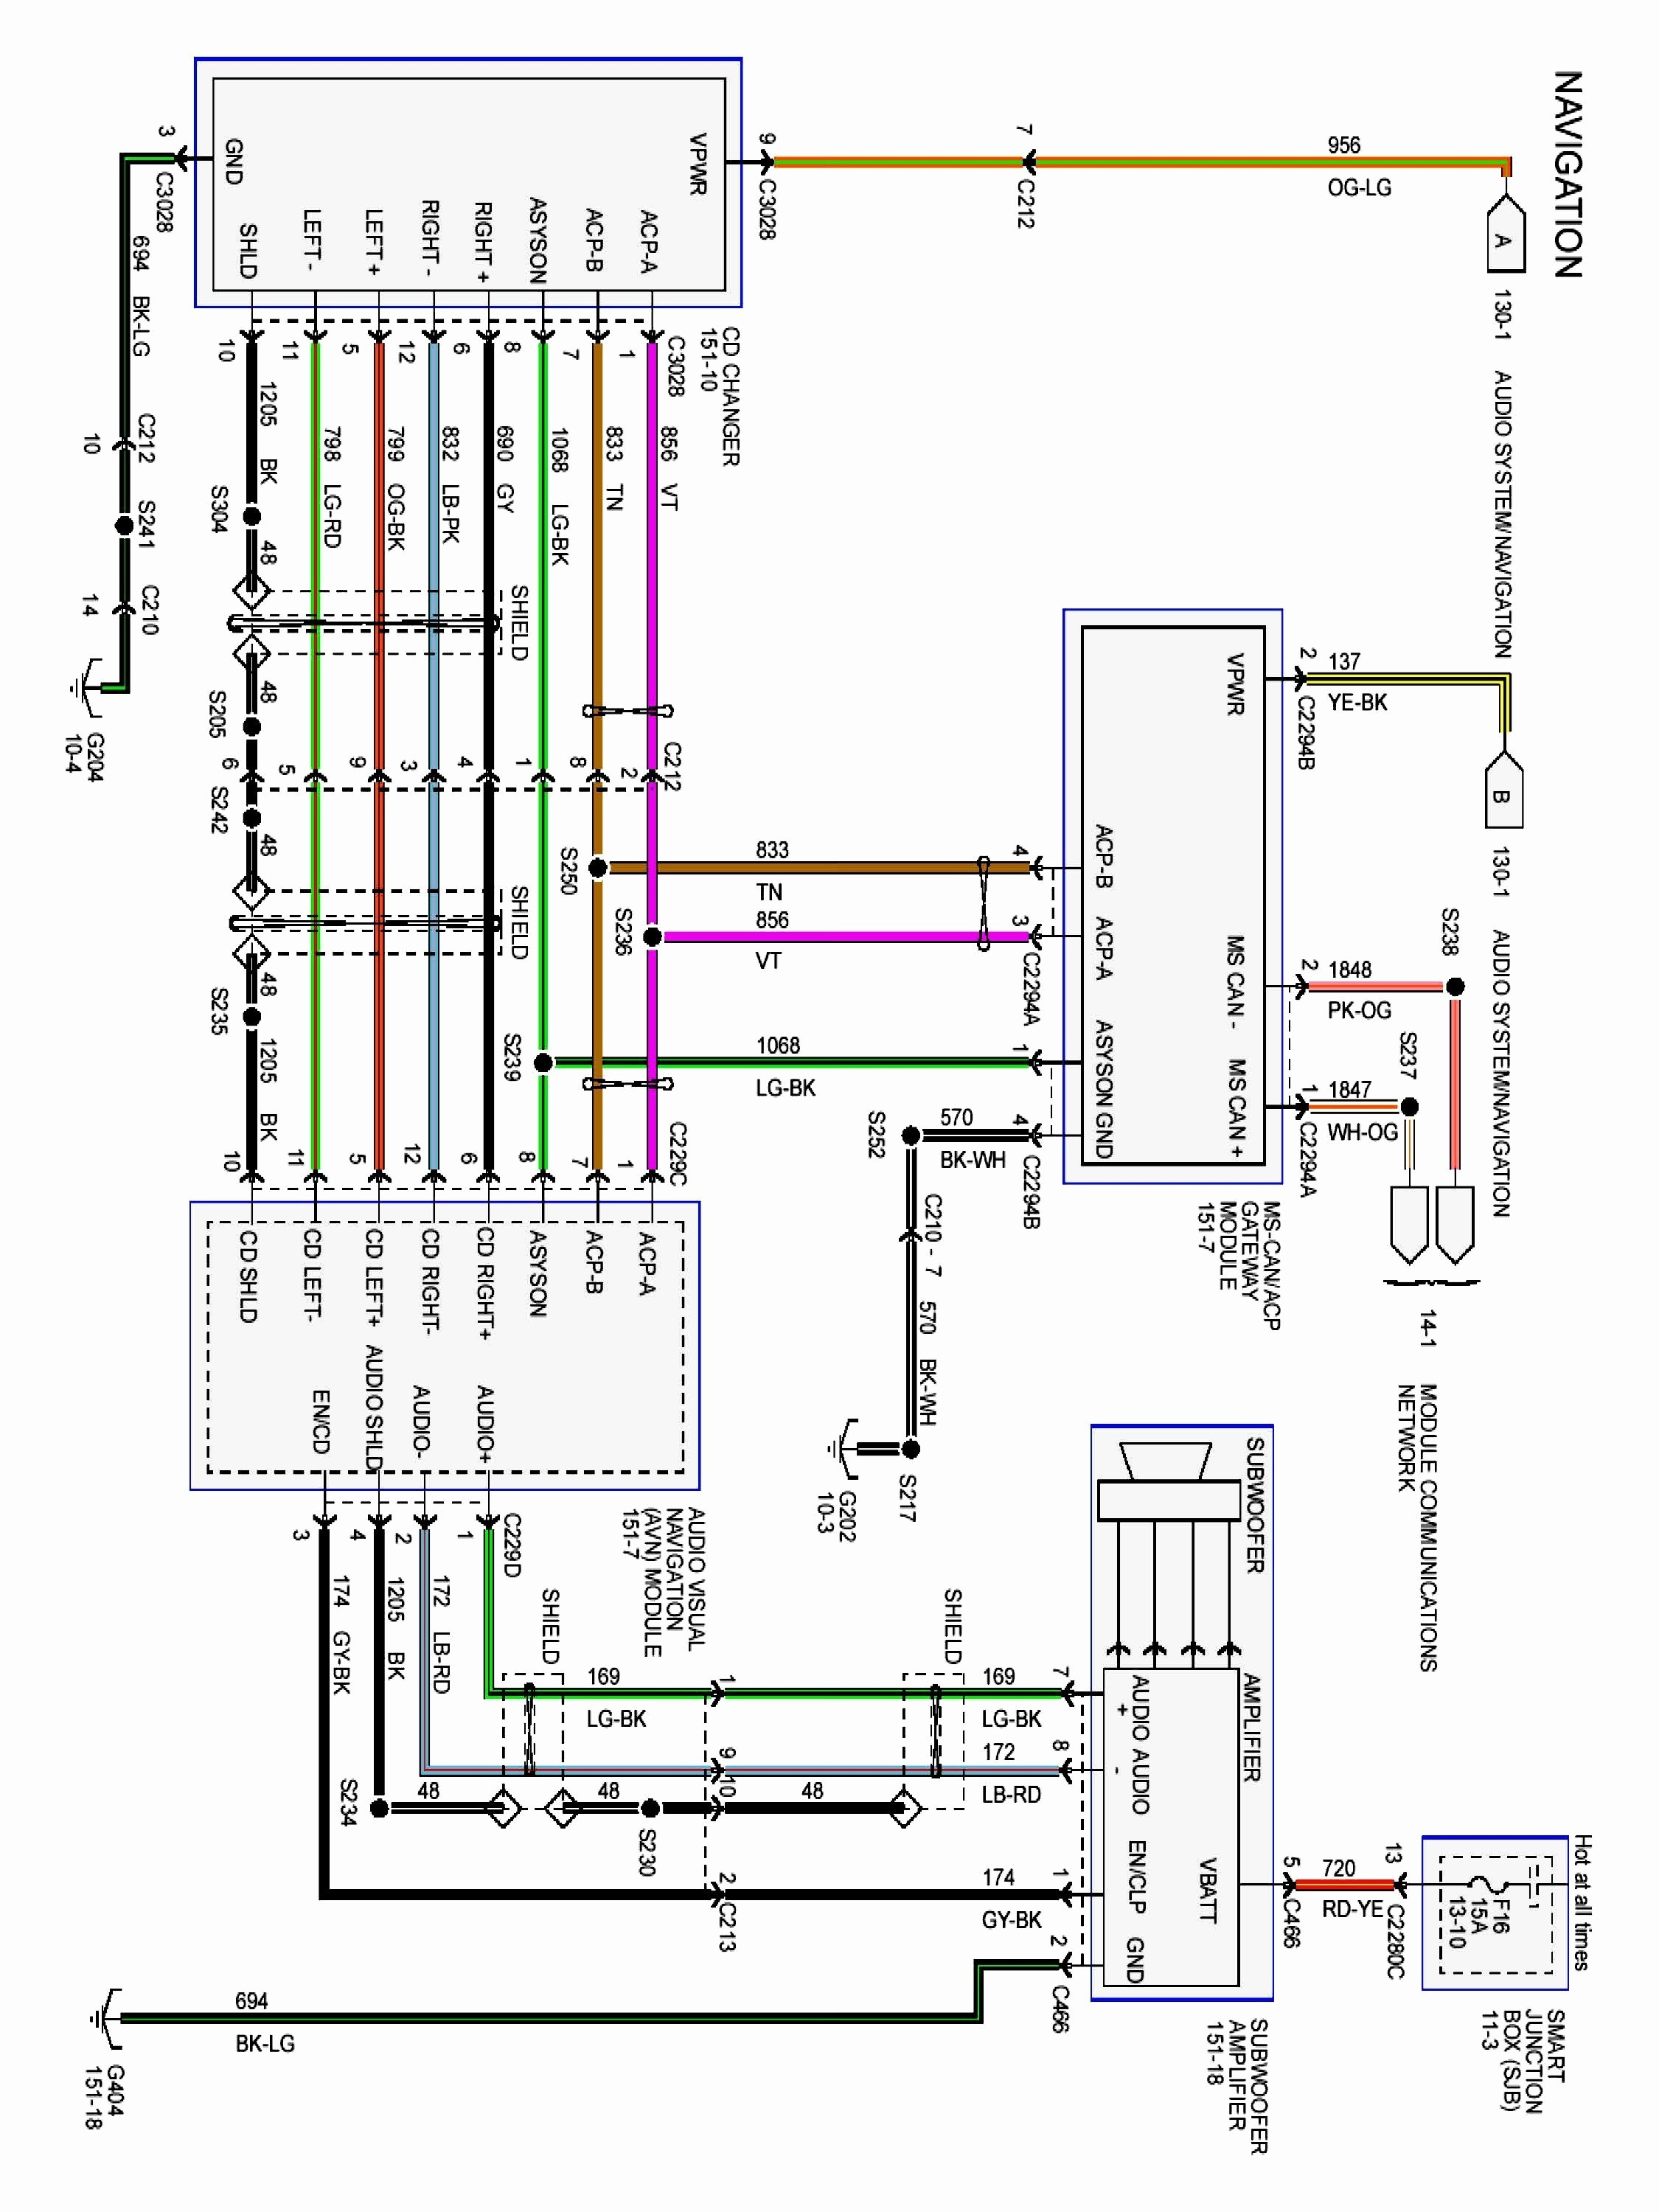 XL_7545] 2003 Chevy Stereo Wiring Download DiagramWiring Diagram Schematics